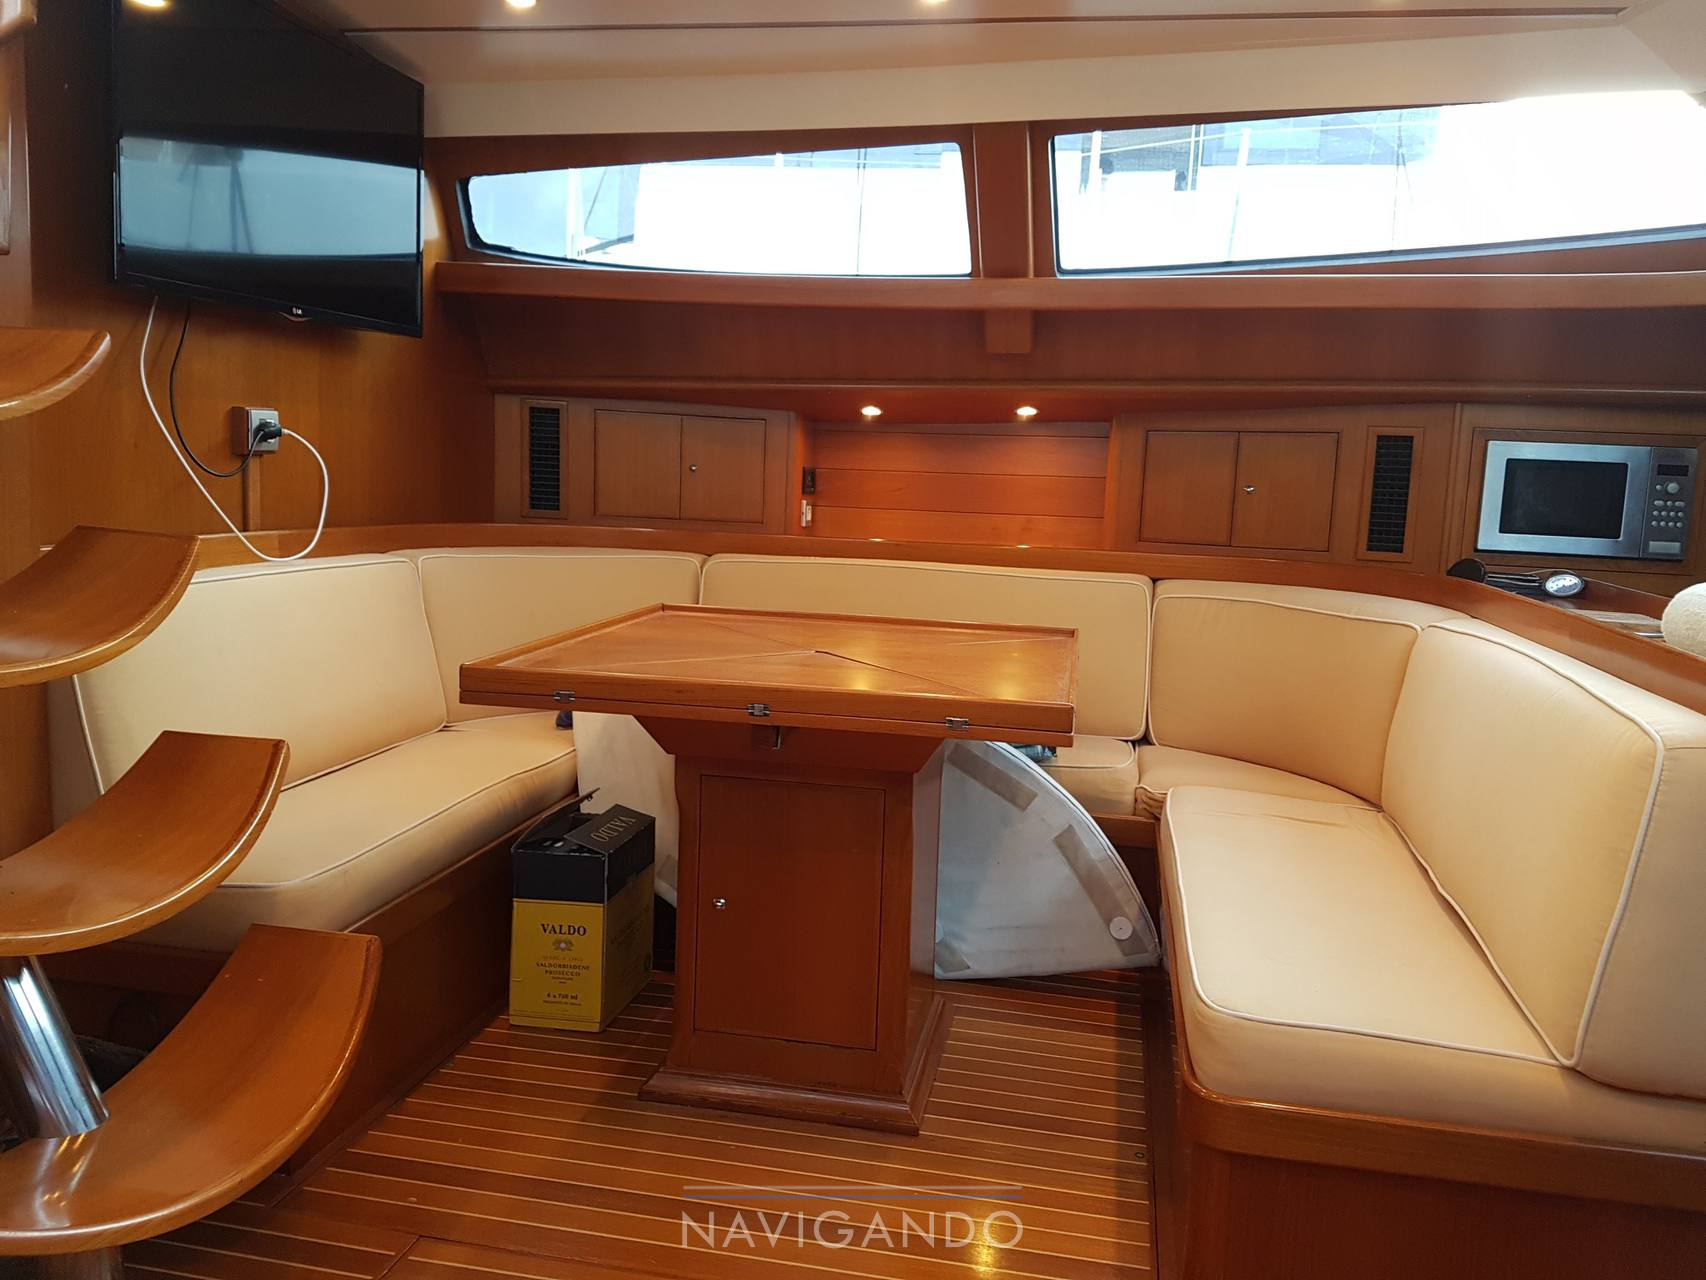 North wind 58 Sailing boat used for sale